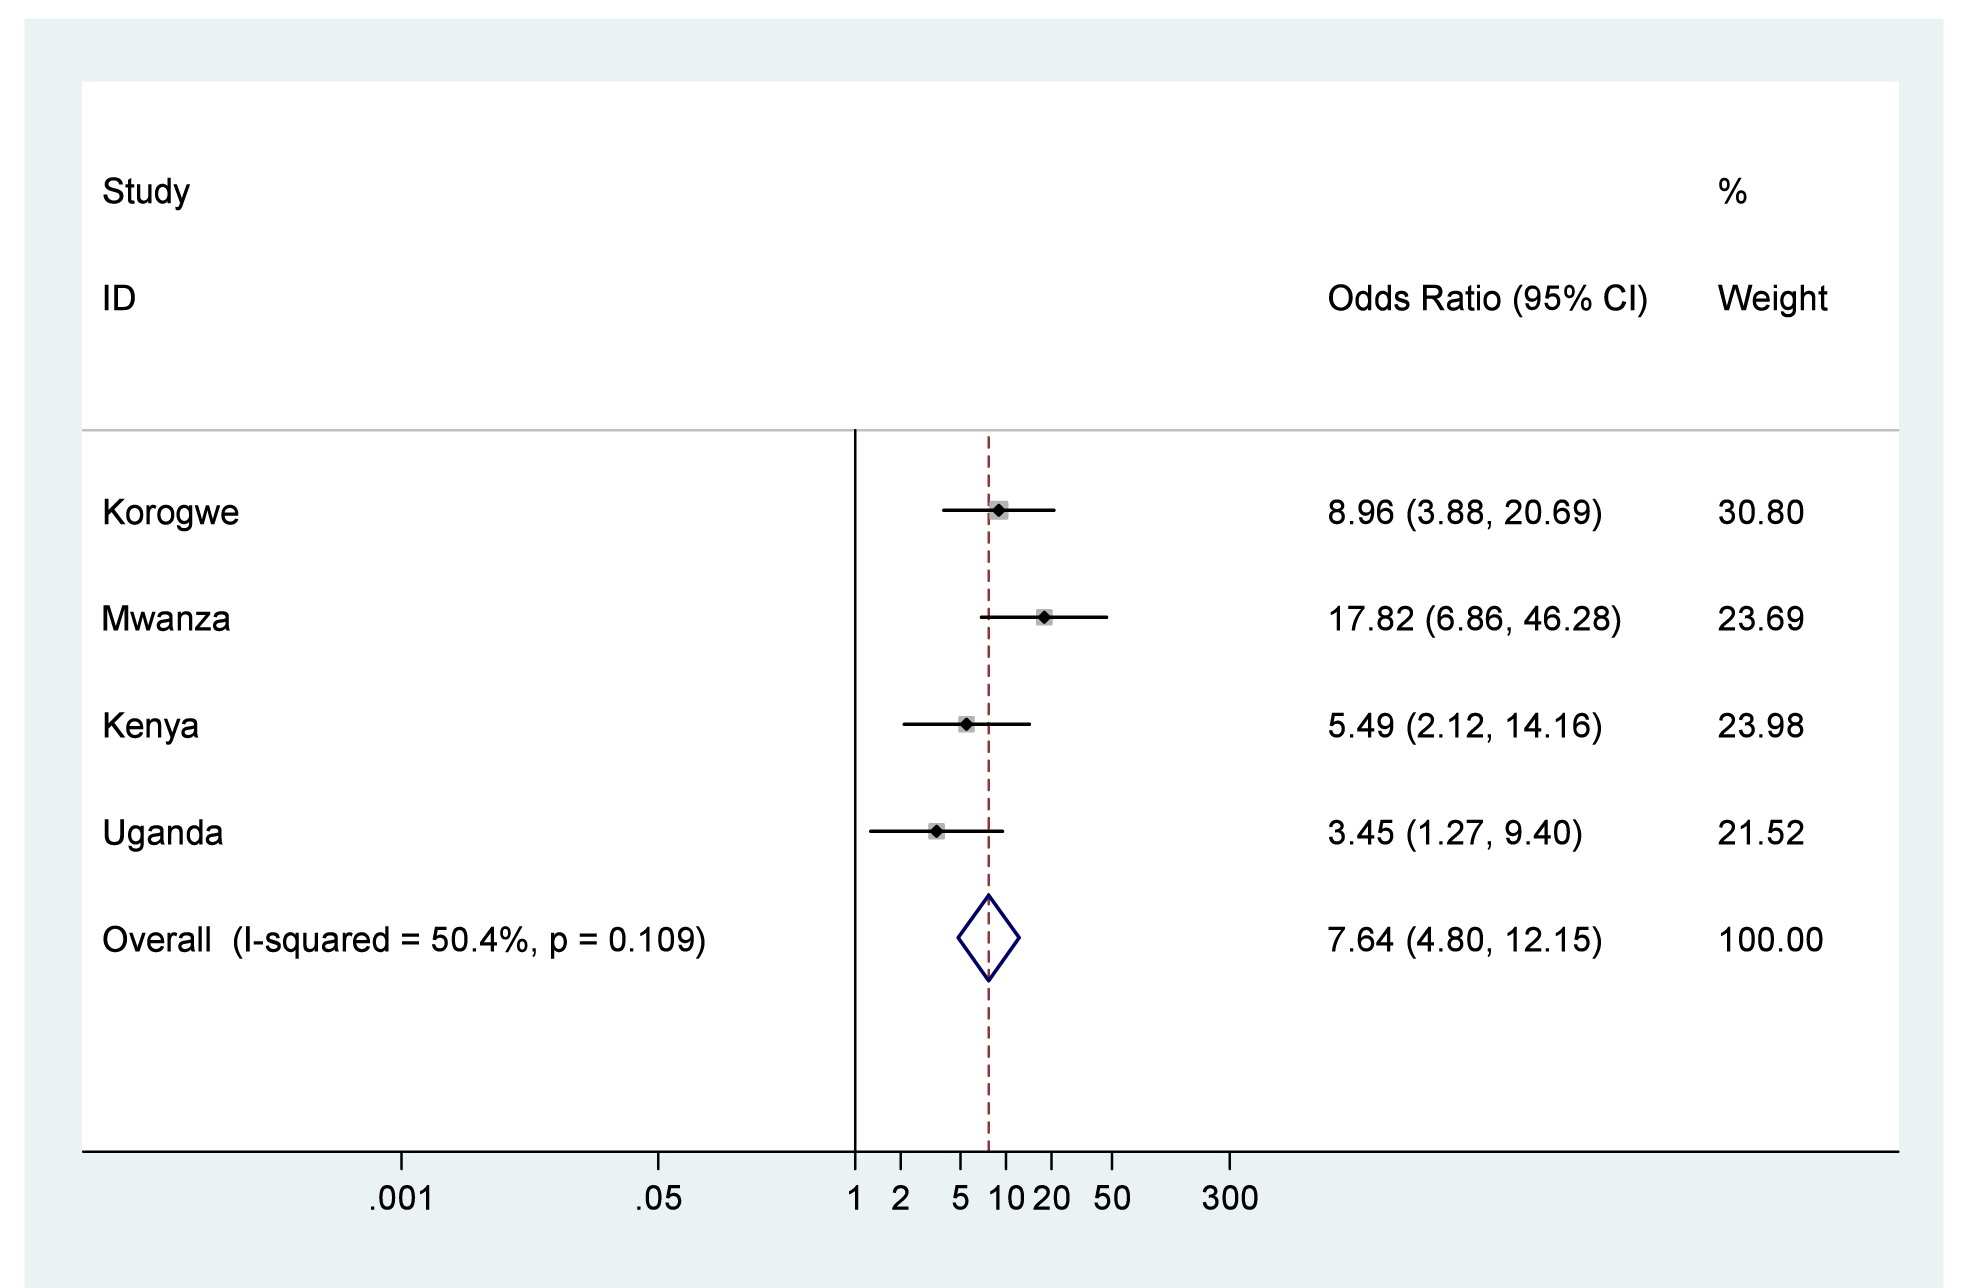 Neonatal mortality outcomes for babies with birth weight <2,500 g compared to babies with birth weight ≥2,500 g.